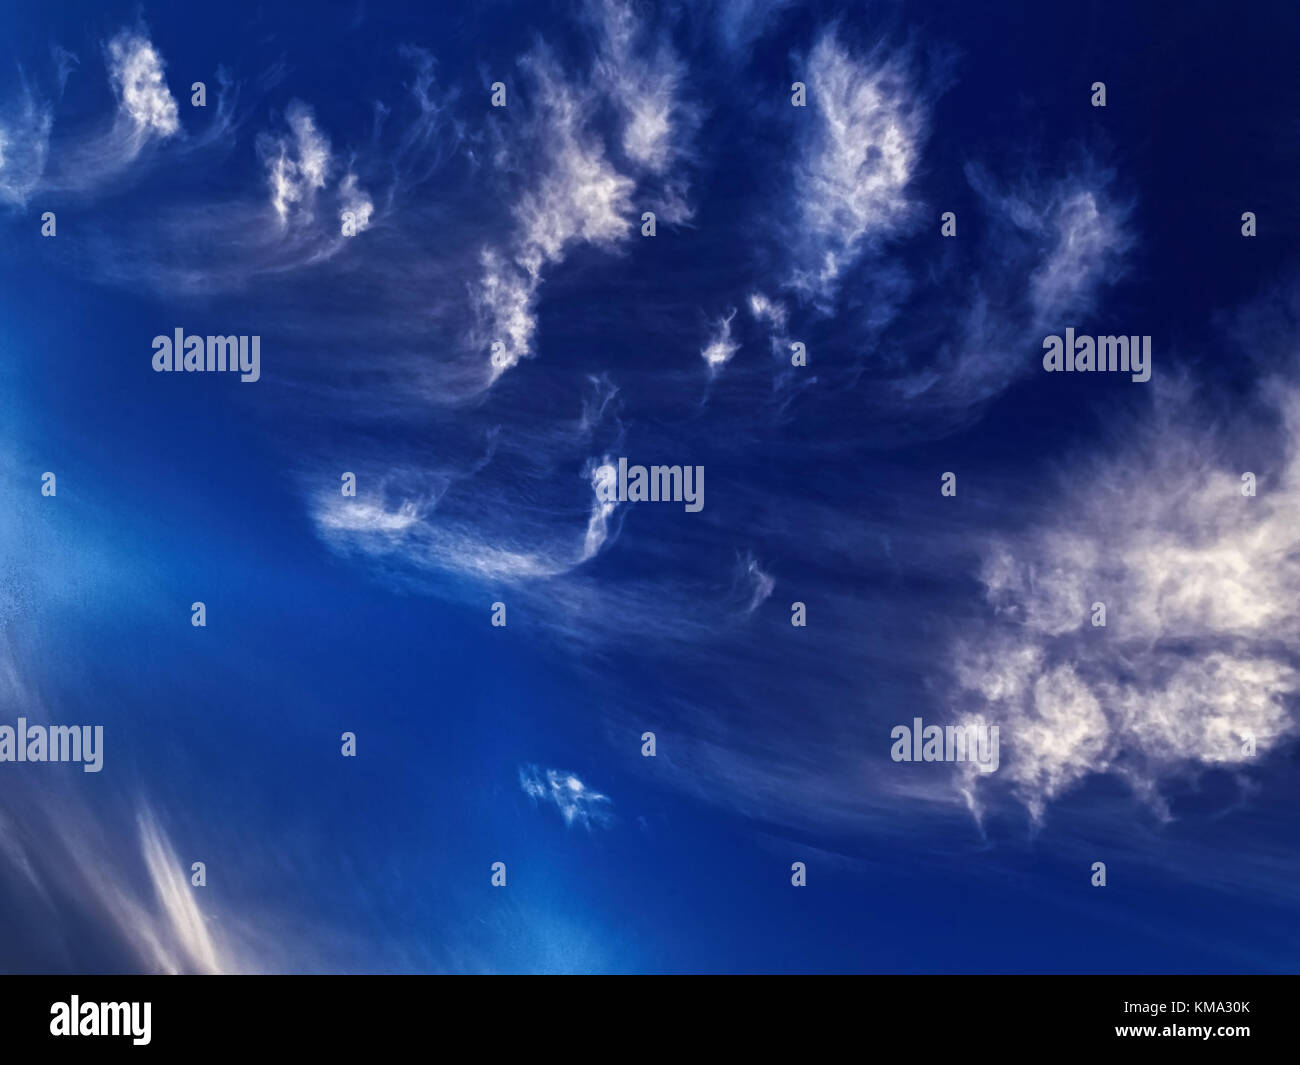 A spectacular inspirational brightly coloured atmospheric cloudy sky cloudscape featuring streaky cirrus cloud formation - Stock Image